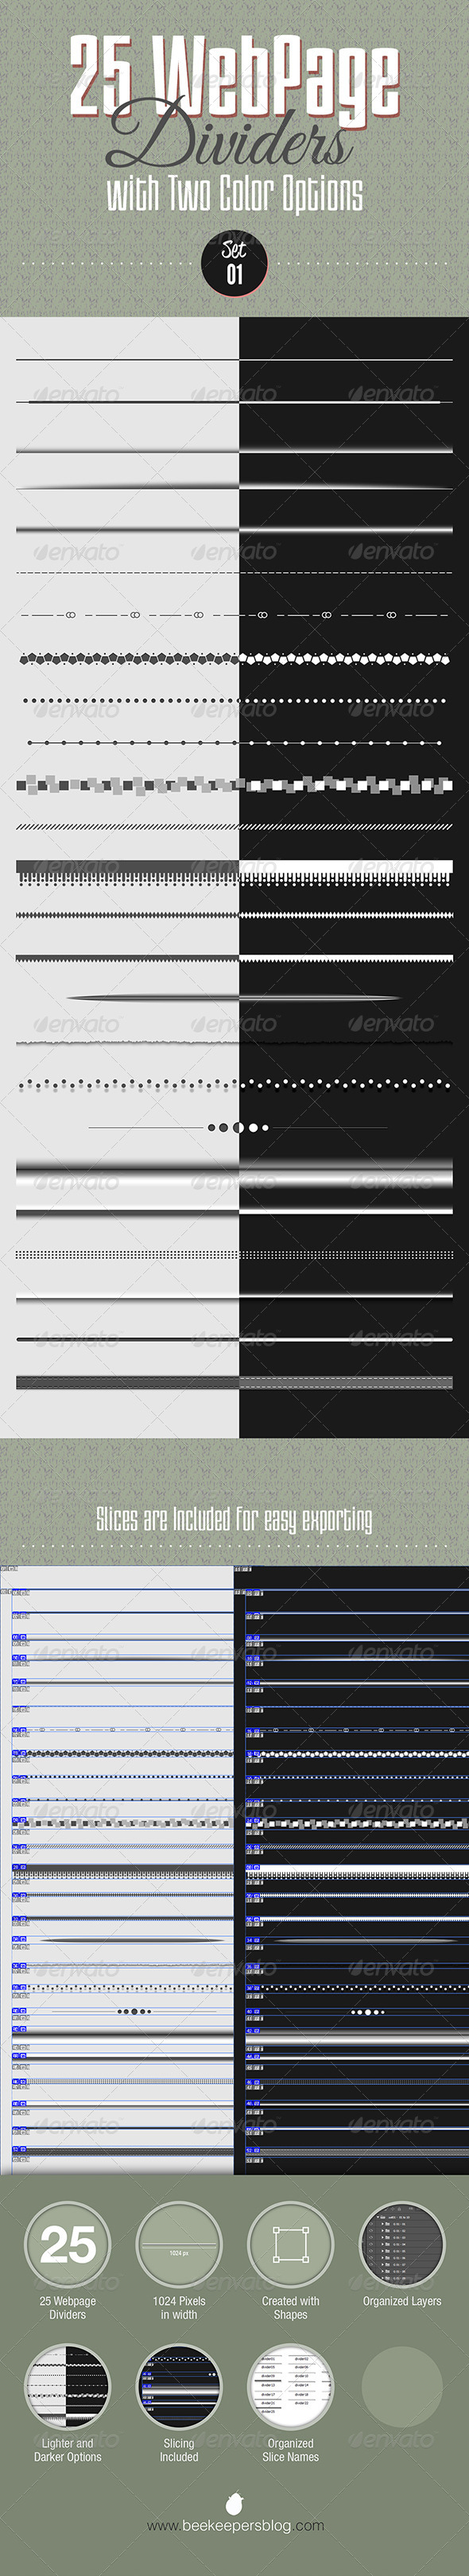 GraphicRiver 25 Webpage Dividers Set 01 8542149